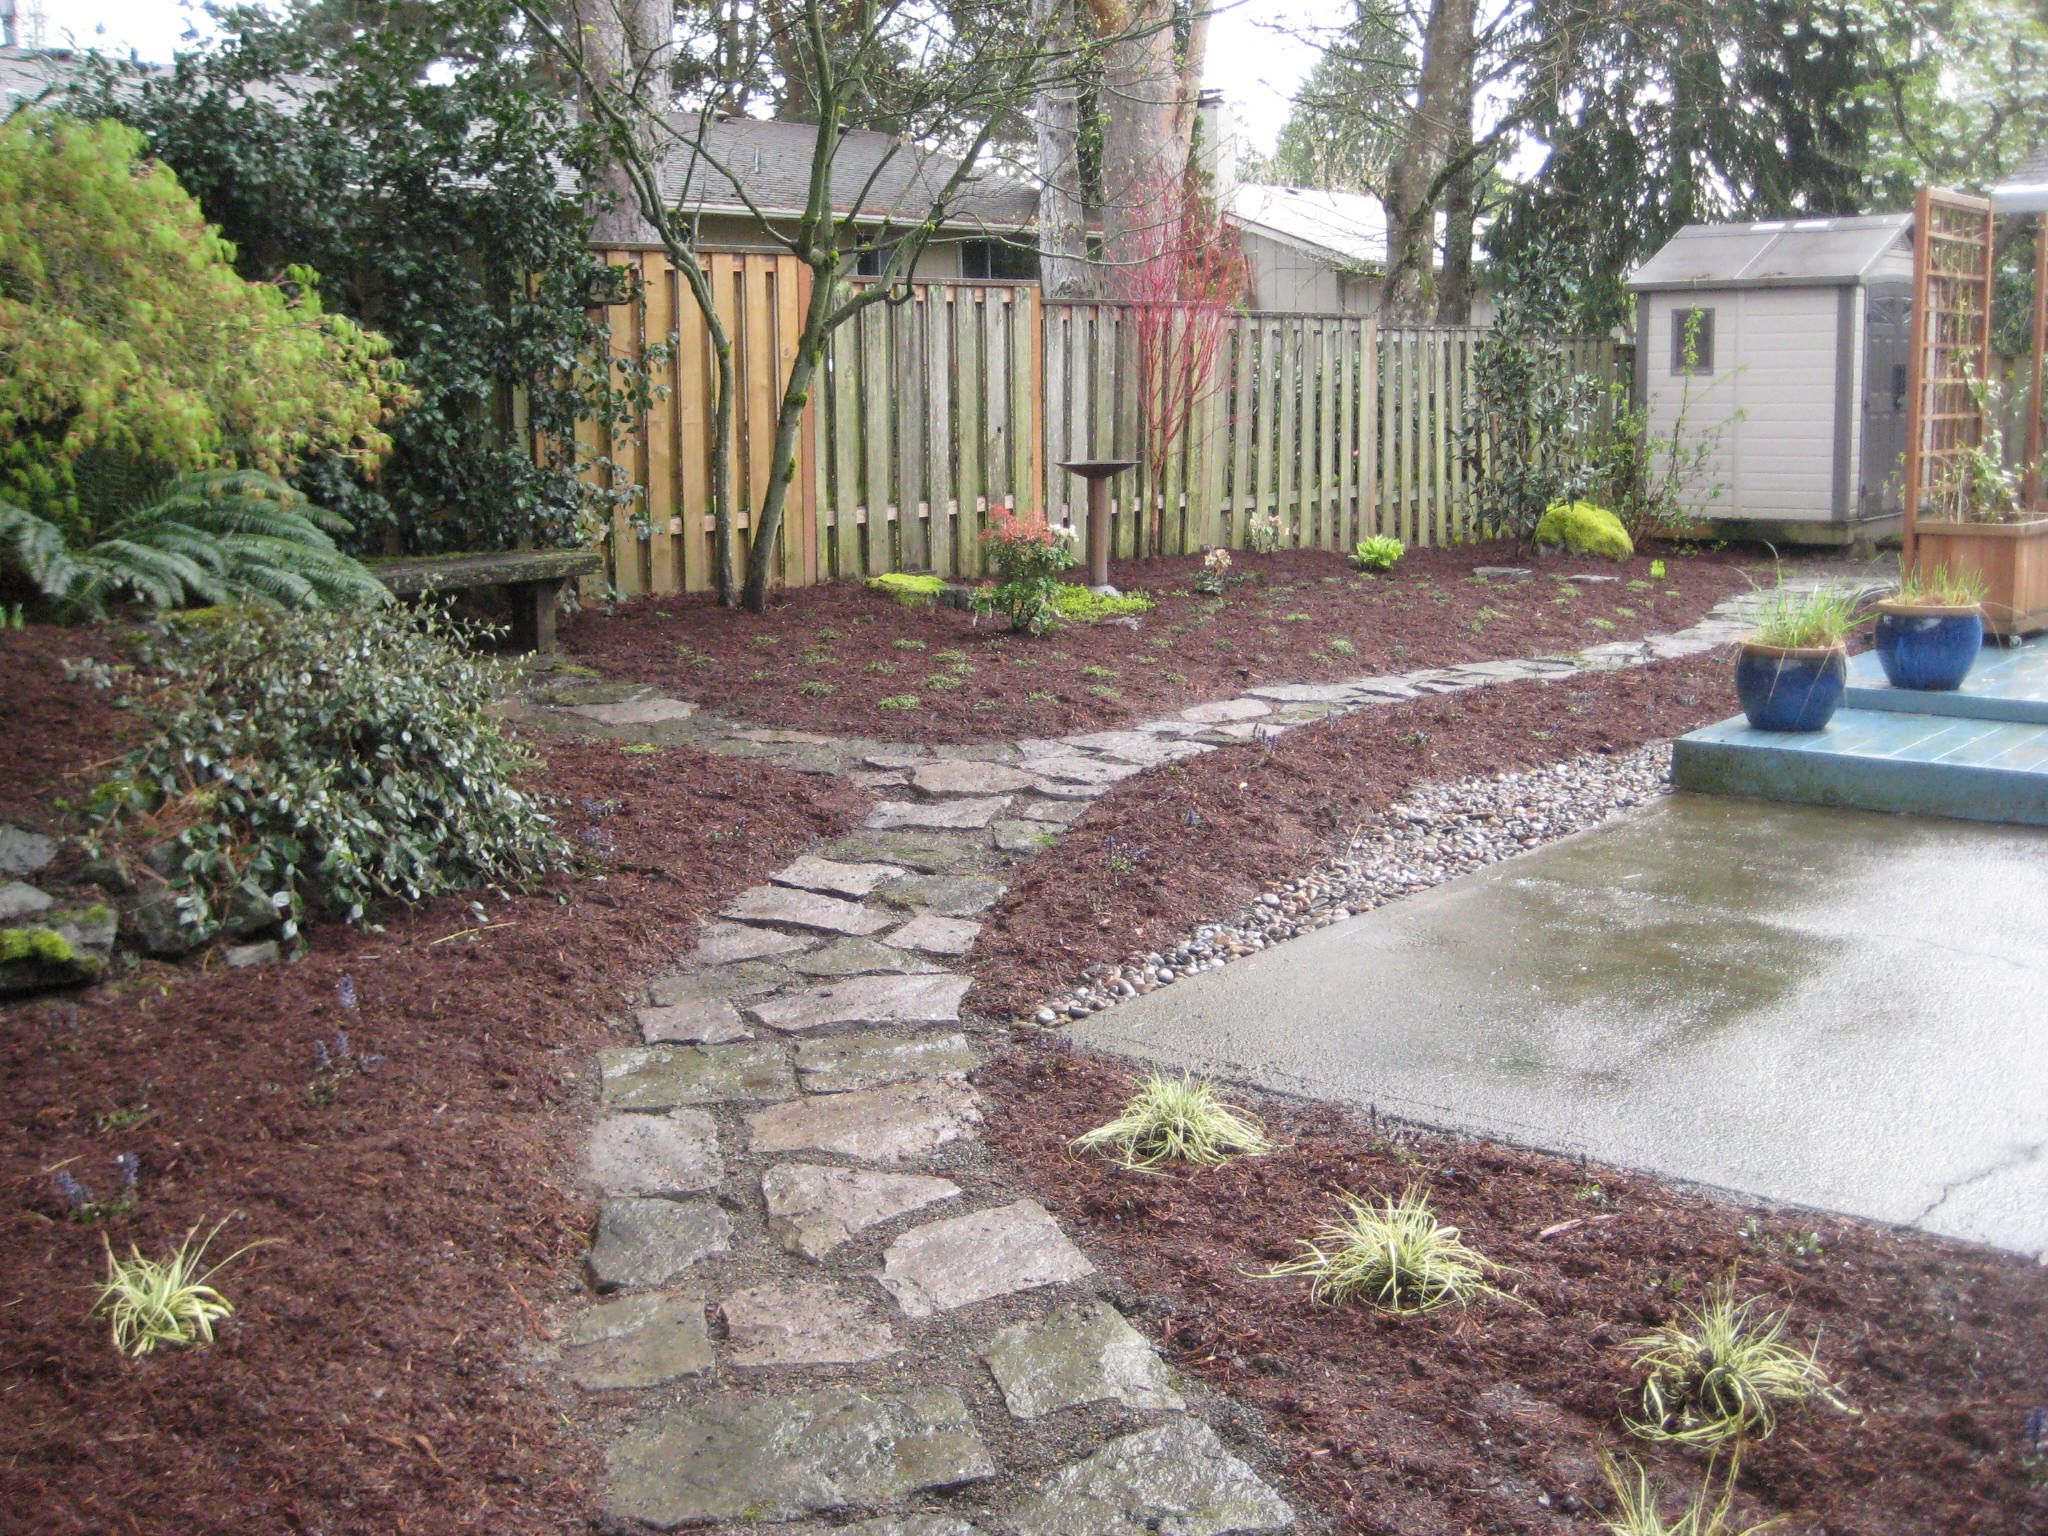 Backyard Ideas Without Grass For Dogs - thorplc.com | No ... on Cheap Backyard Ideas No Grass  id=94372